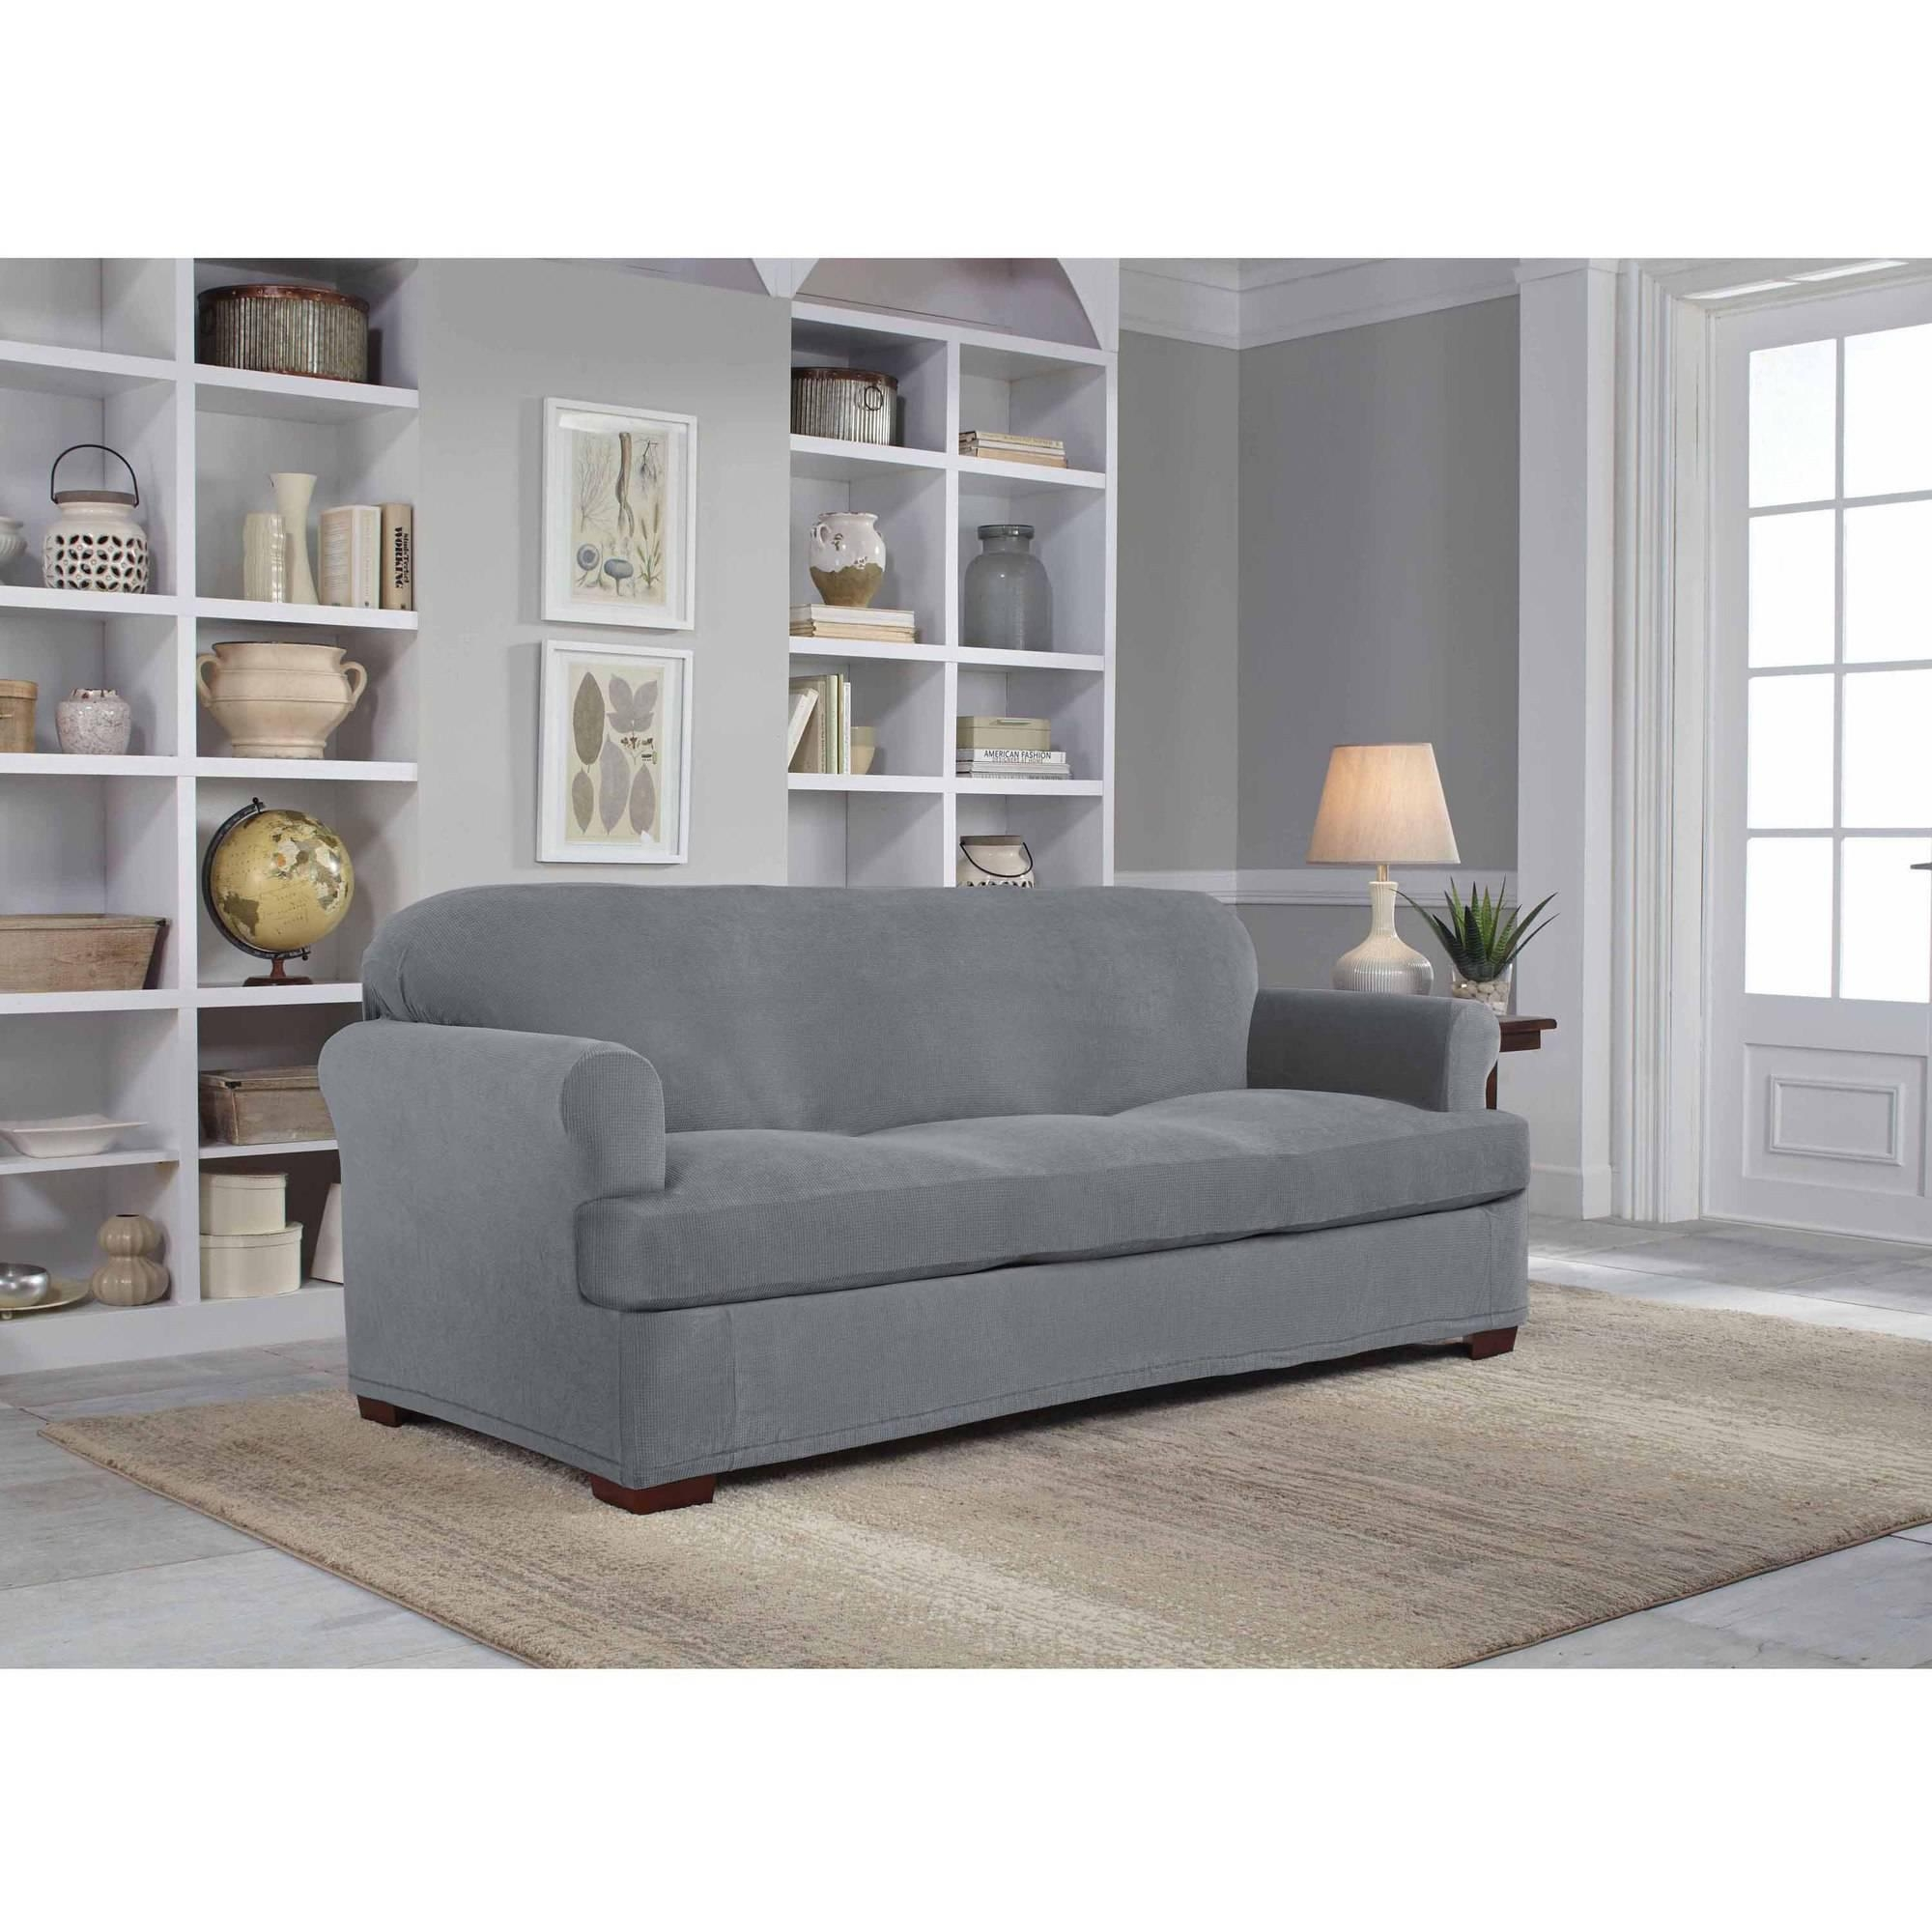 sofa and loveseat covers at walmart sleeper replacement mattress twin t cushion slipcovers for large sofas ideas